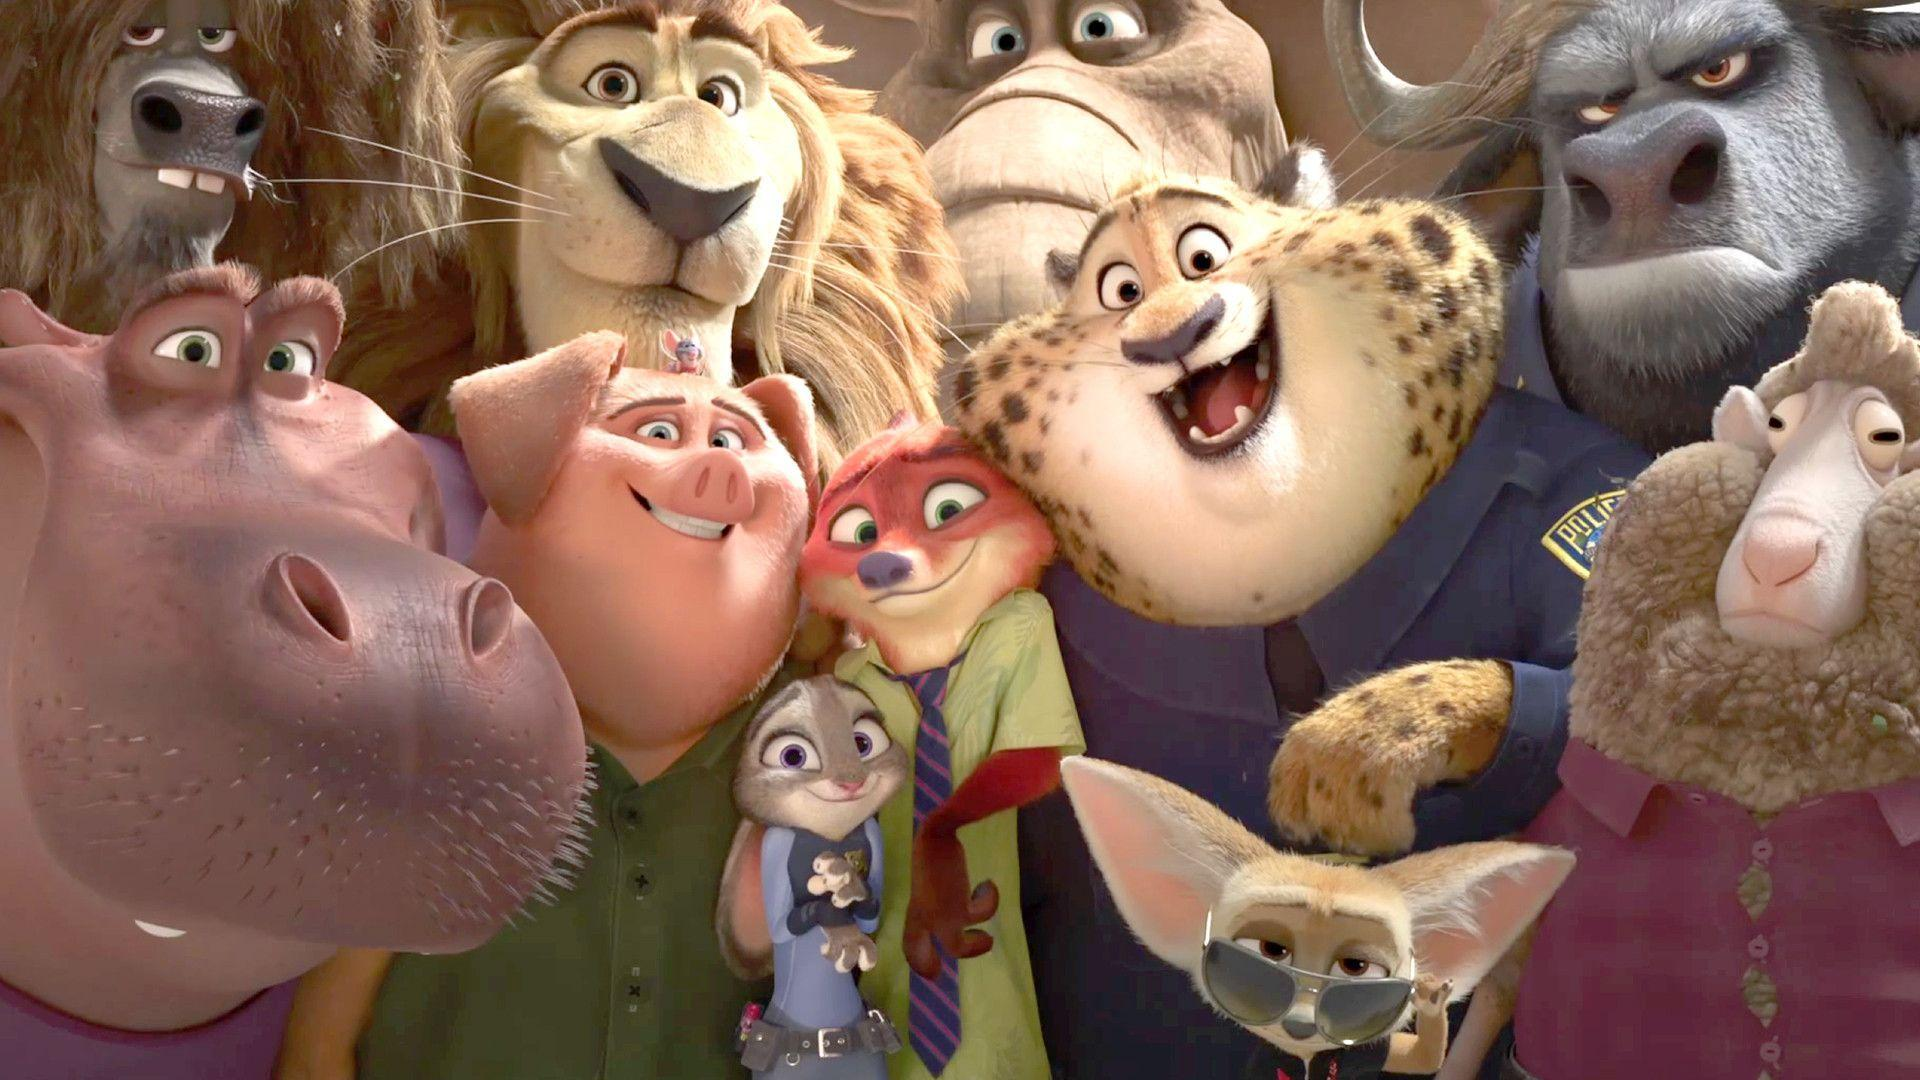 Pictures Of Zootopia Characters